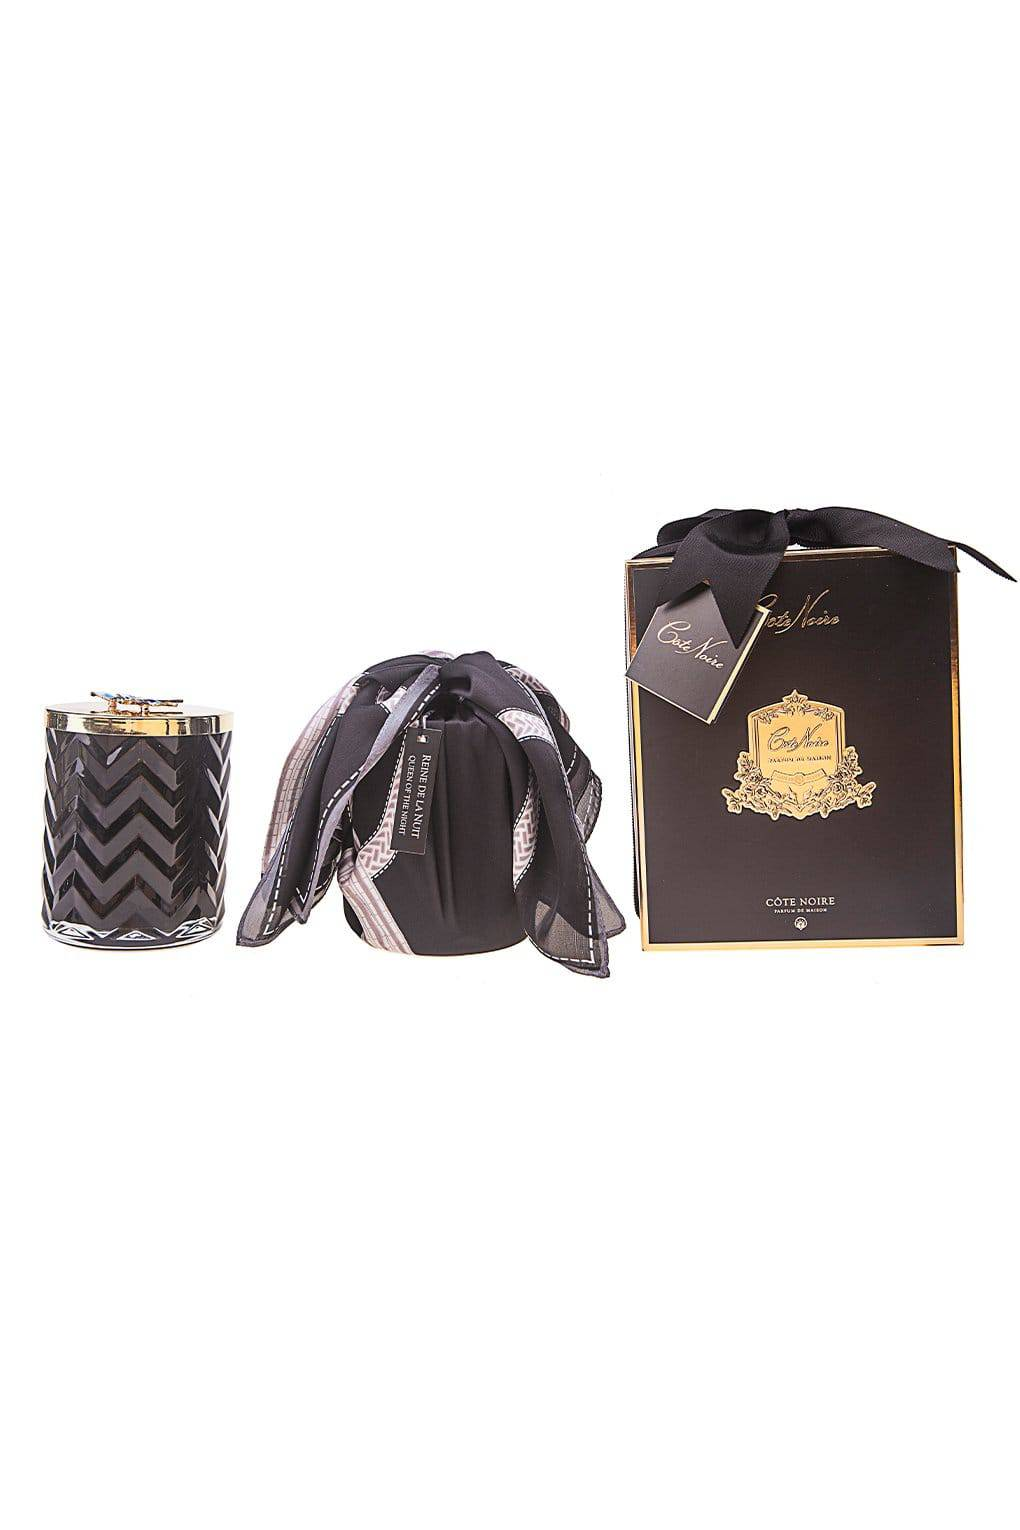 COTE NOIRE Black Herringbone Candle with Scarf - Golden & Red Bee Lid - Queen Of The Night - Cote Noire - [product type] - Magpie Style